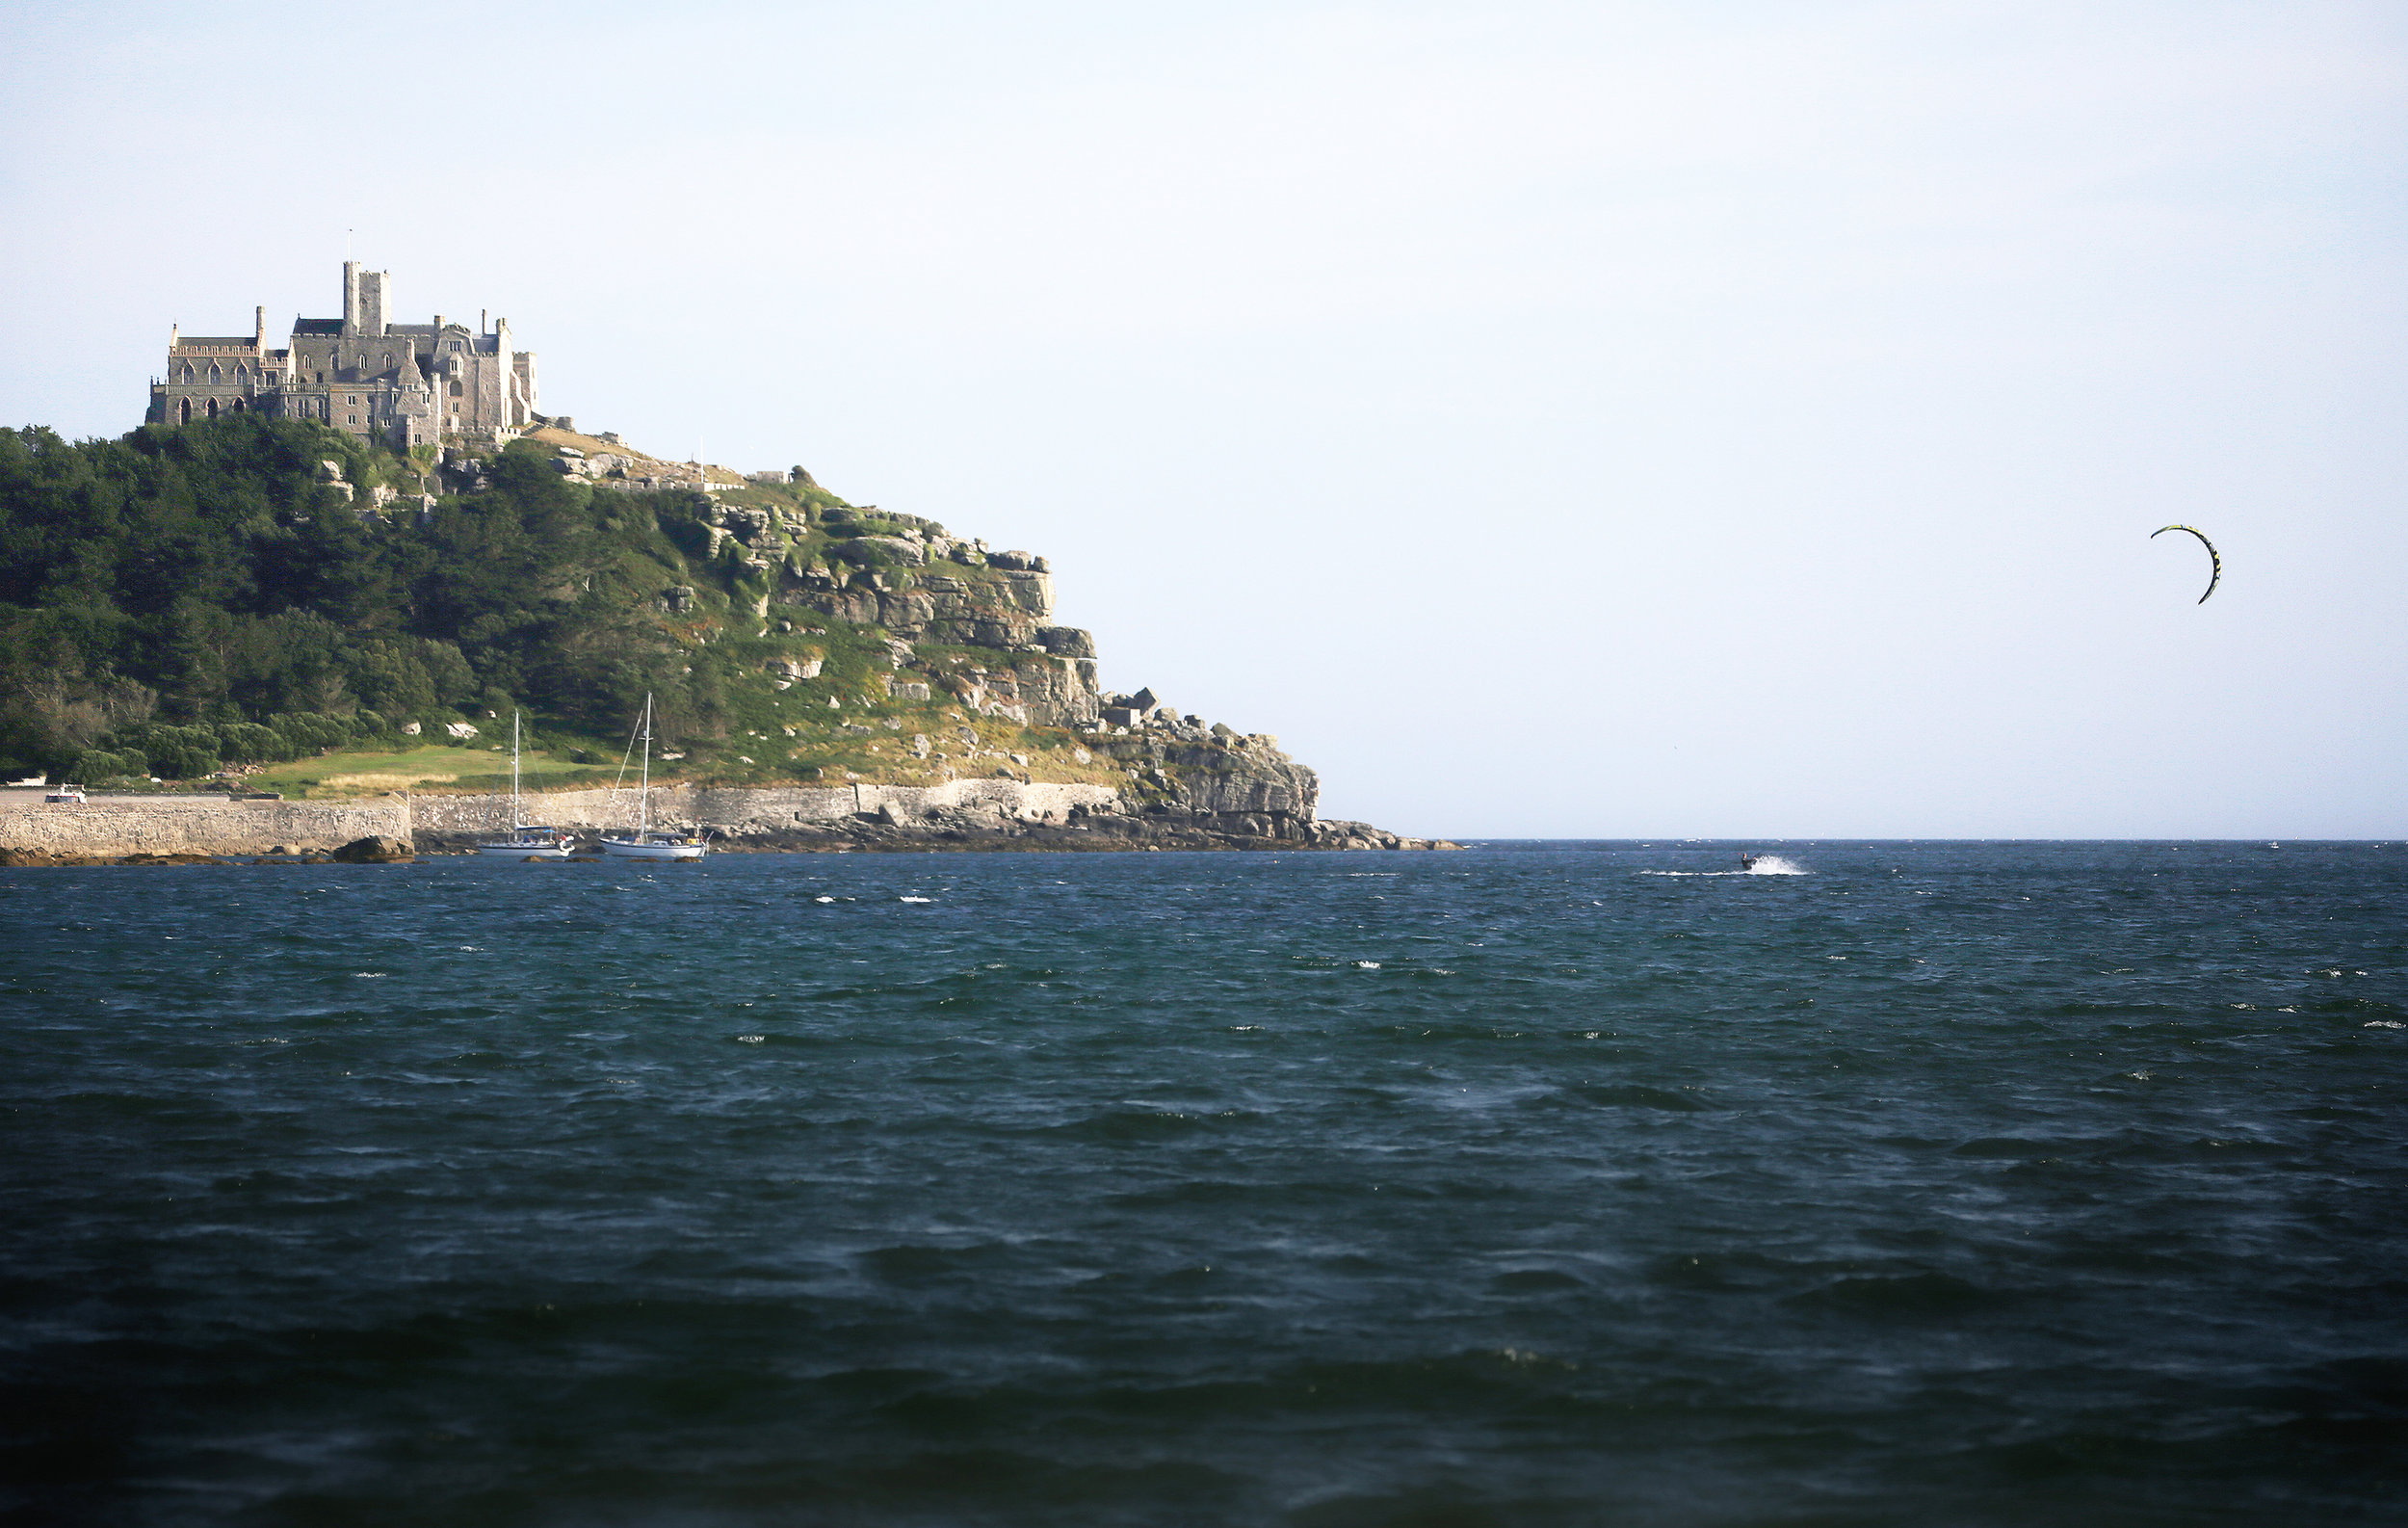 swc michaels mount.jpeg